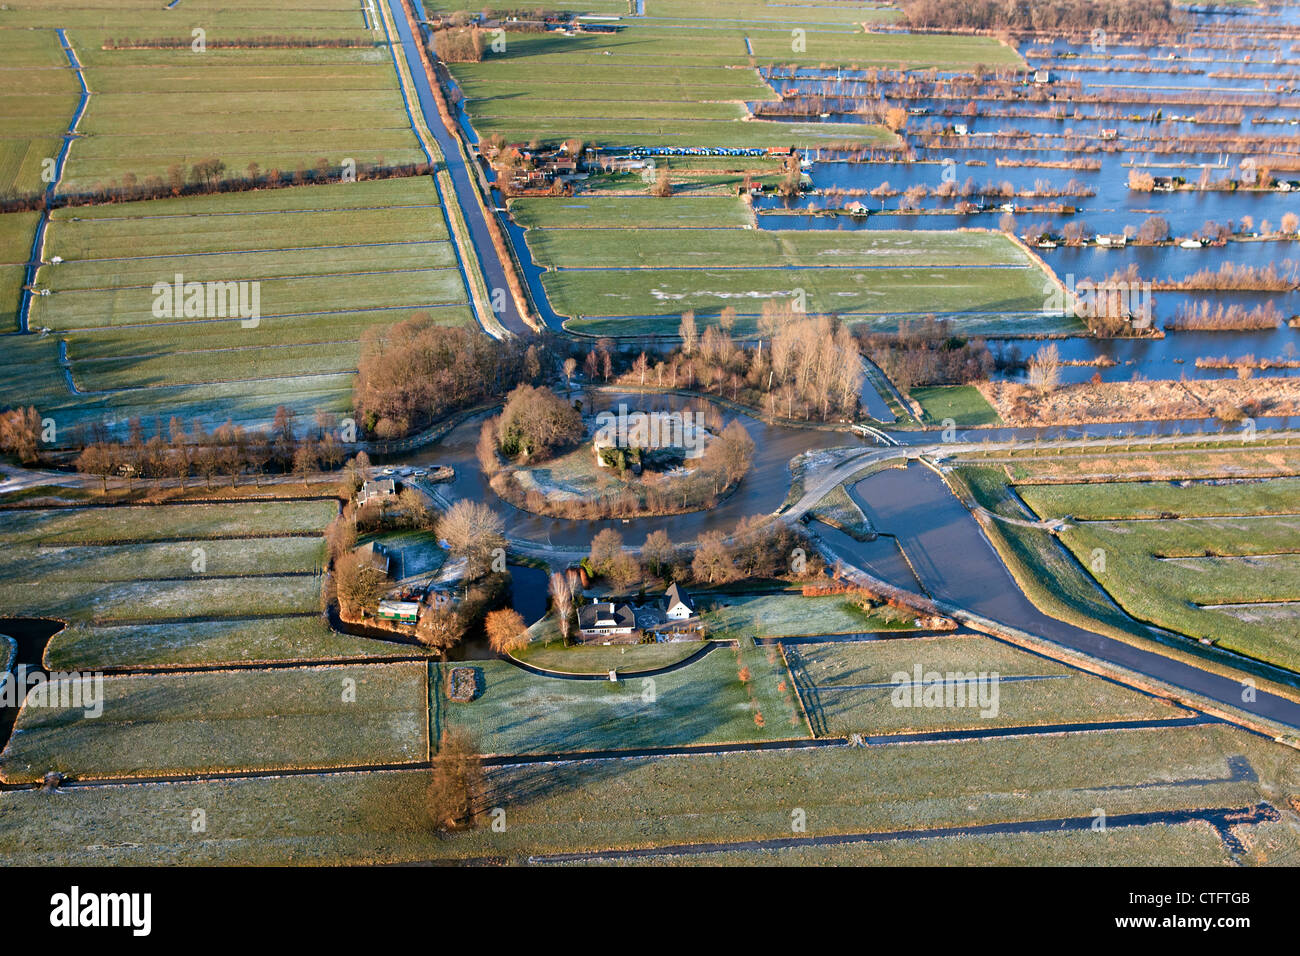 The Netherlands, Loosdrecht, Fort Spy, part of the New Dutch Waterline, a military line of defense. - Stock Image